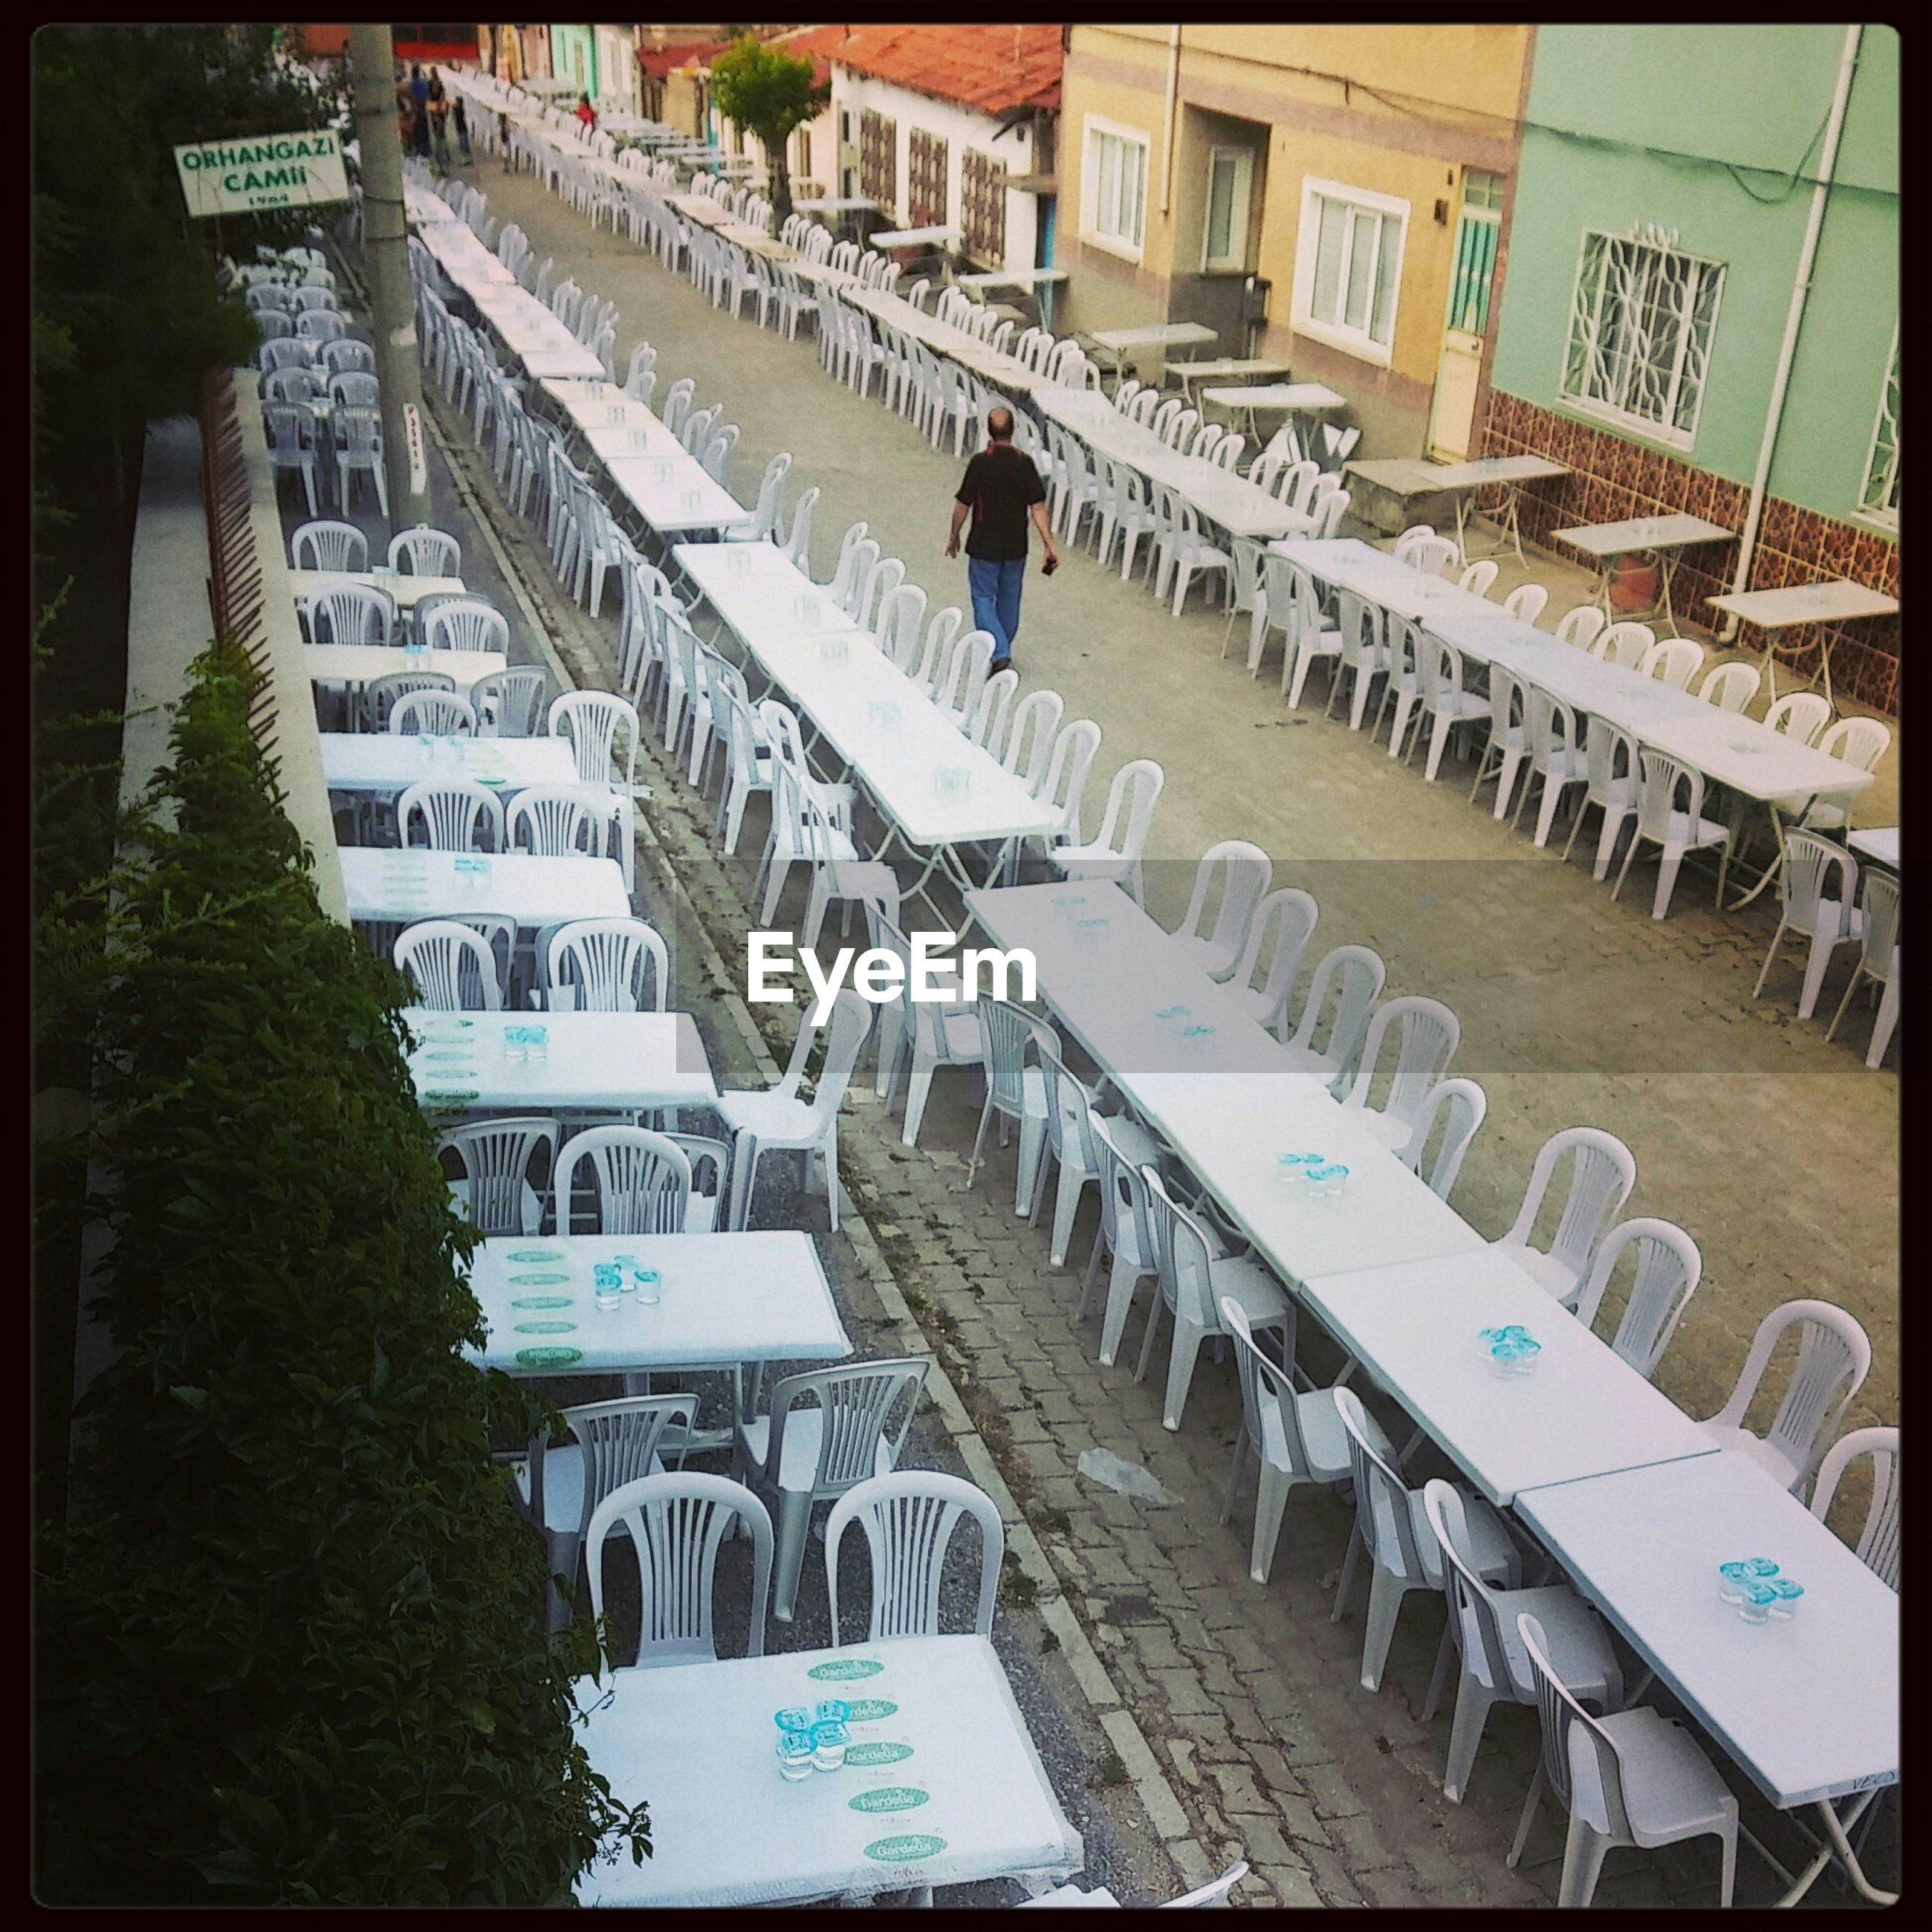 Empty chairs and tables in rows